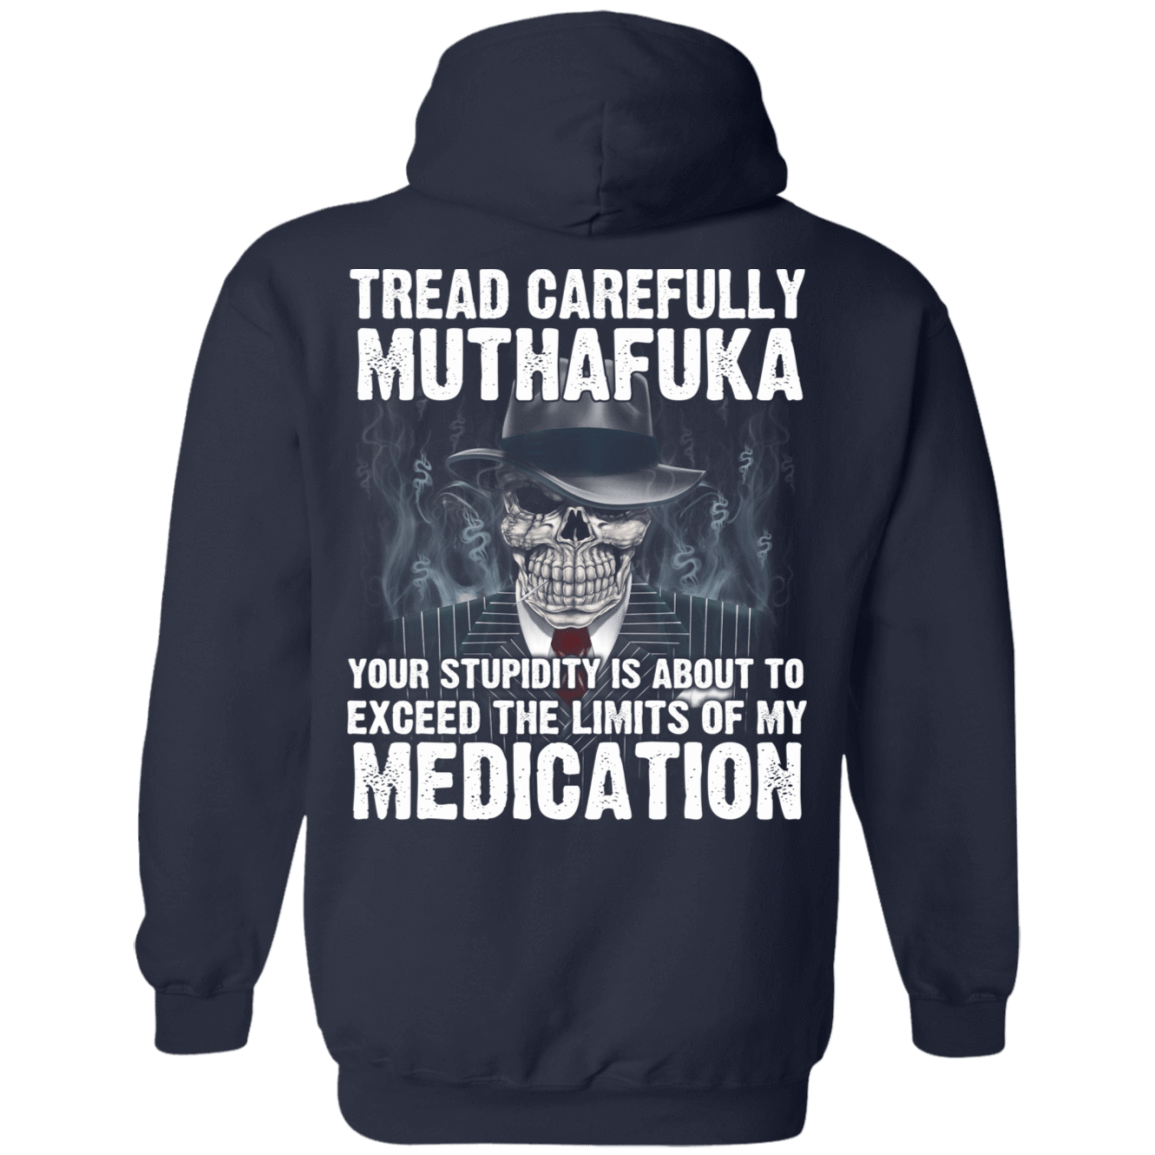 Tread Carefully Muthafuka Your Stupidity Is About To Exceed The Limits Of My Medication 541-4742-72709228-23135 - Tee Ript